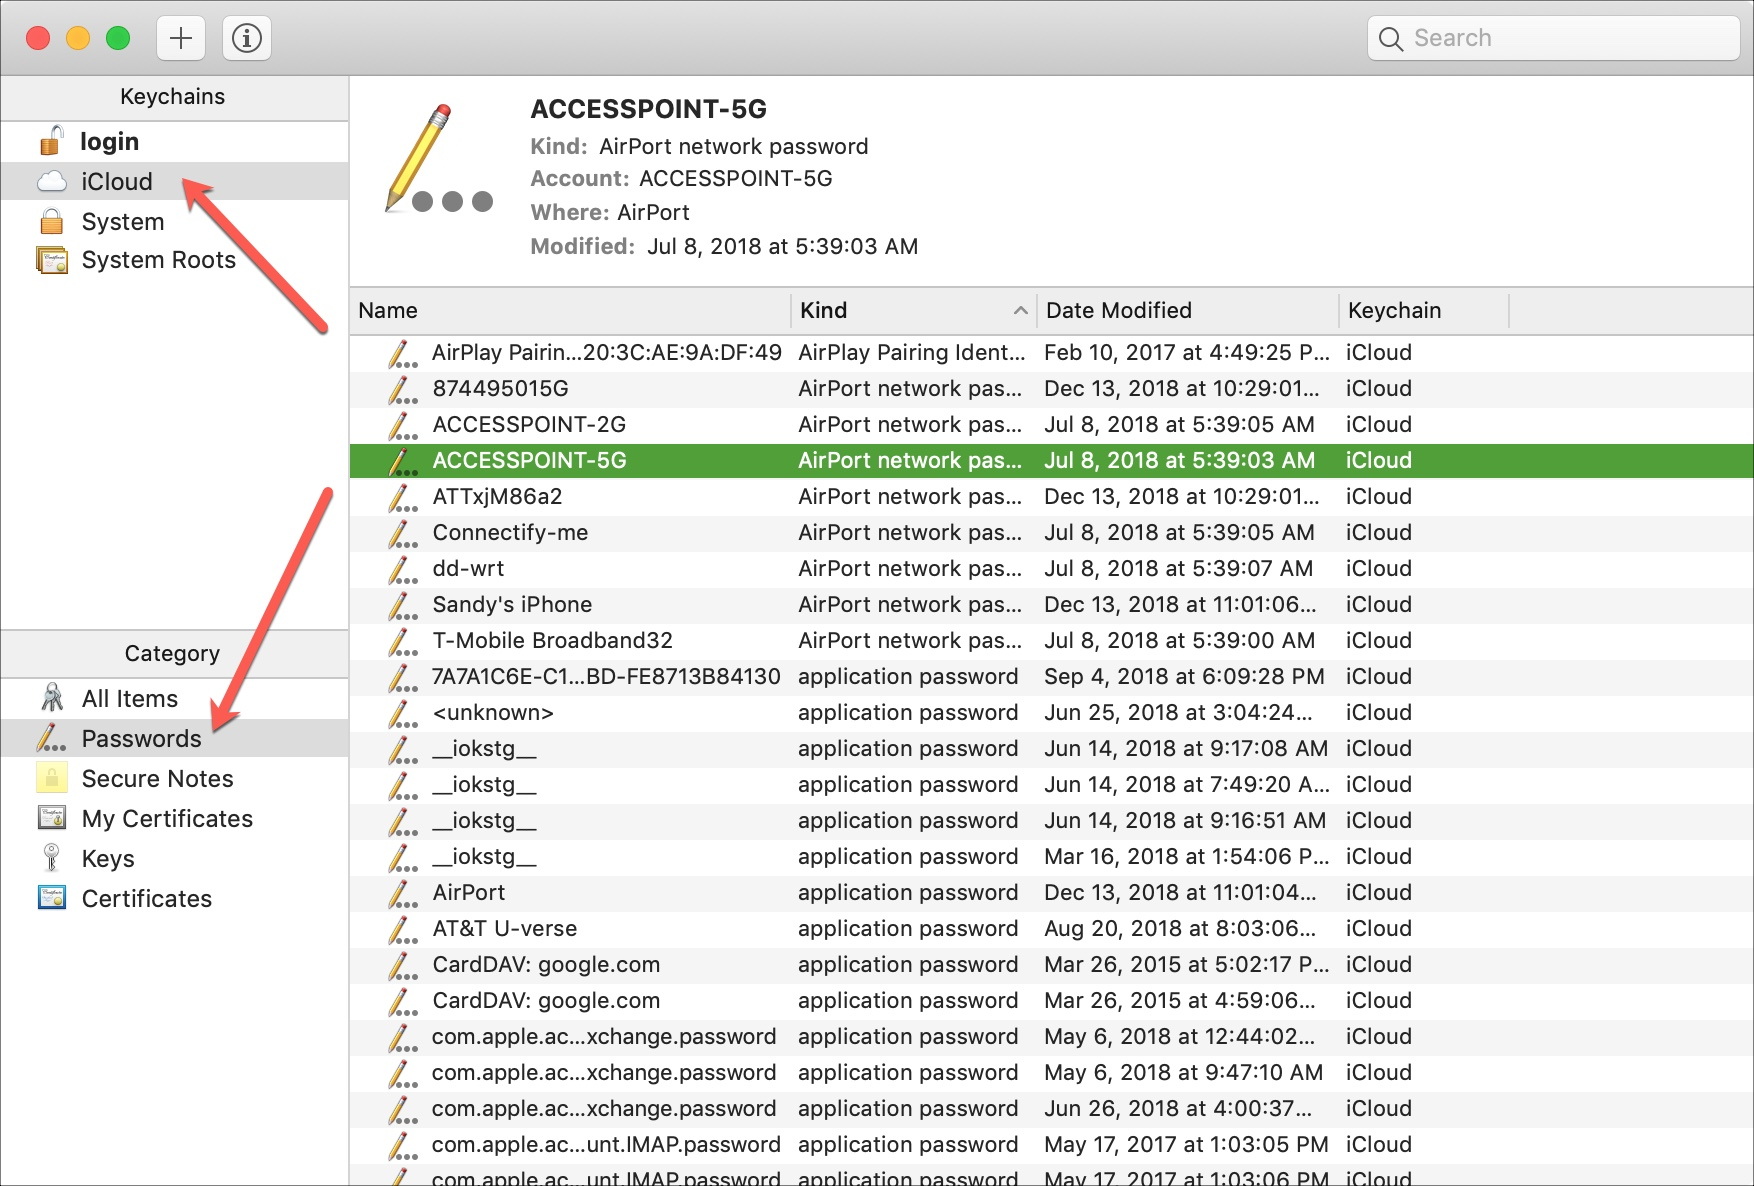 Keychain Access iCloud Passwords on Mac